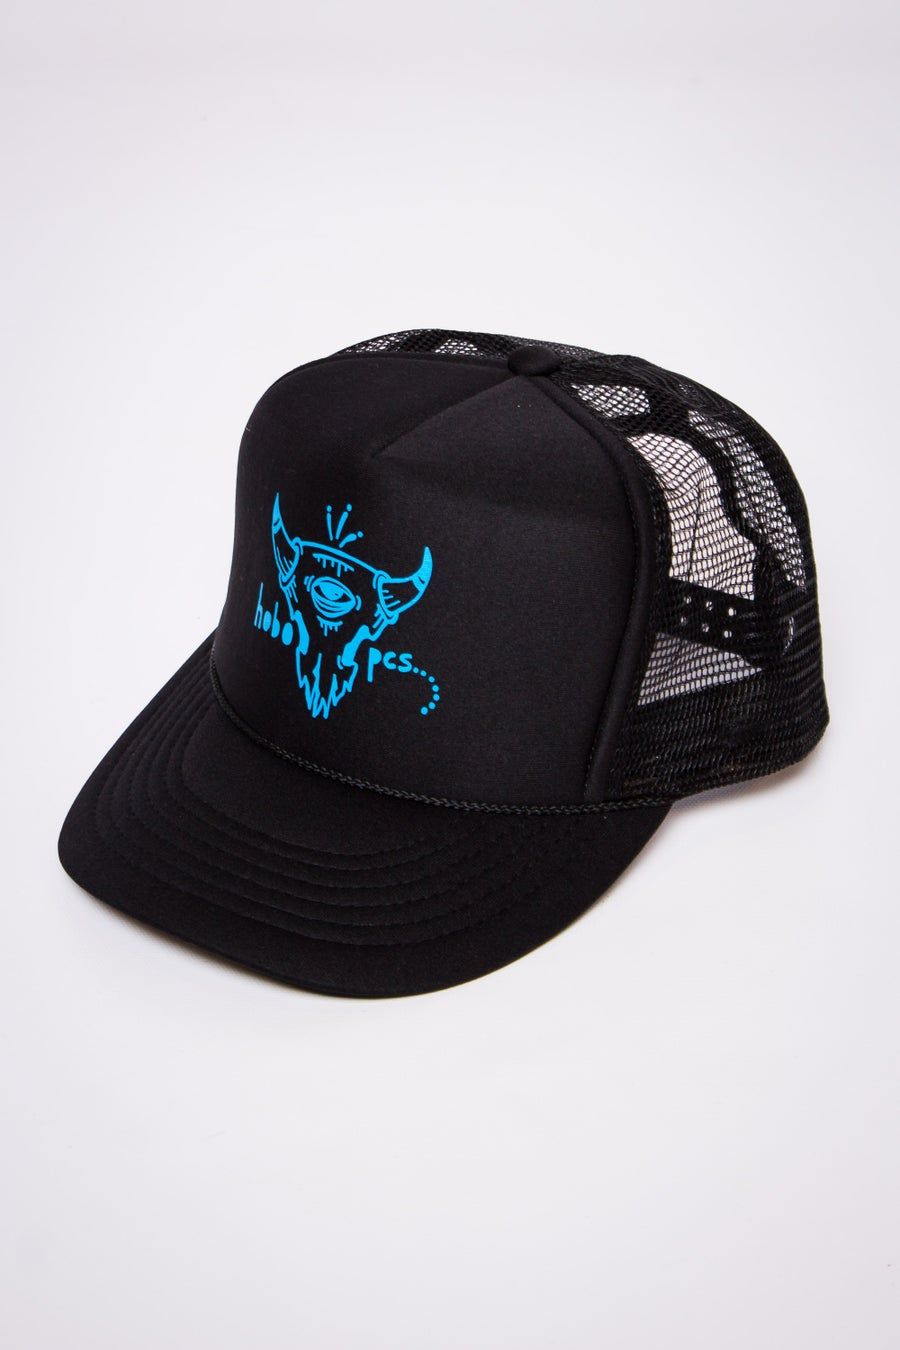 Image of Black Trucker Hat